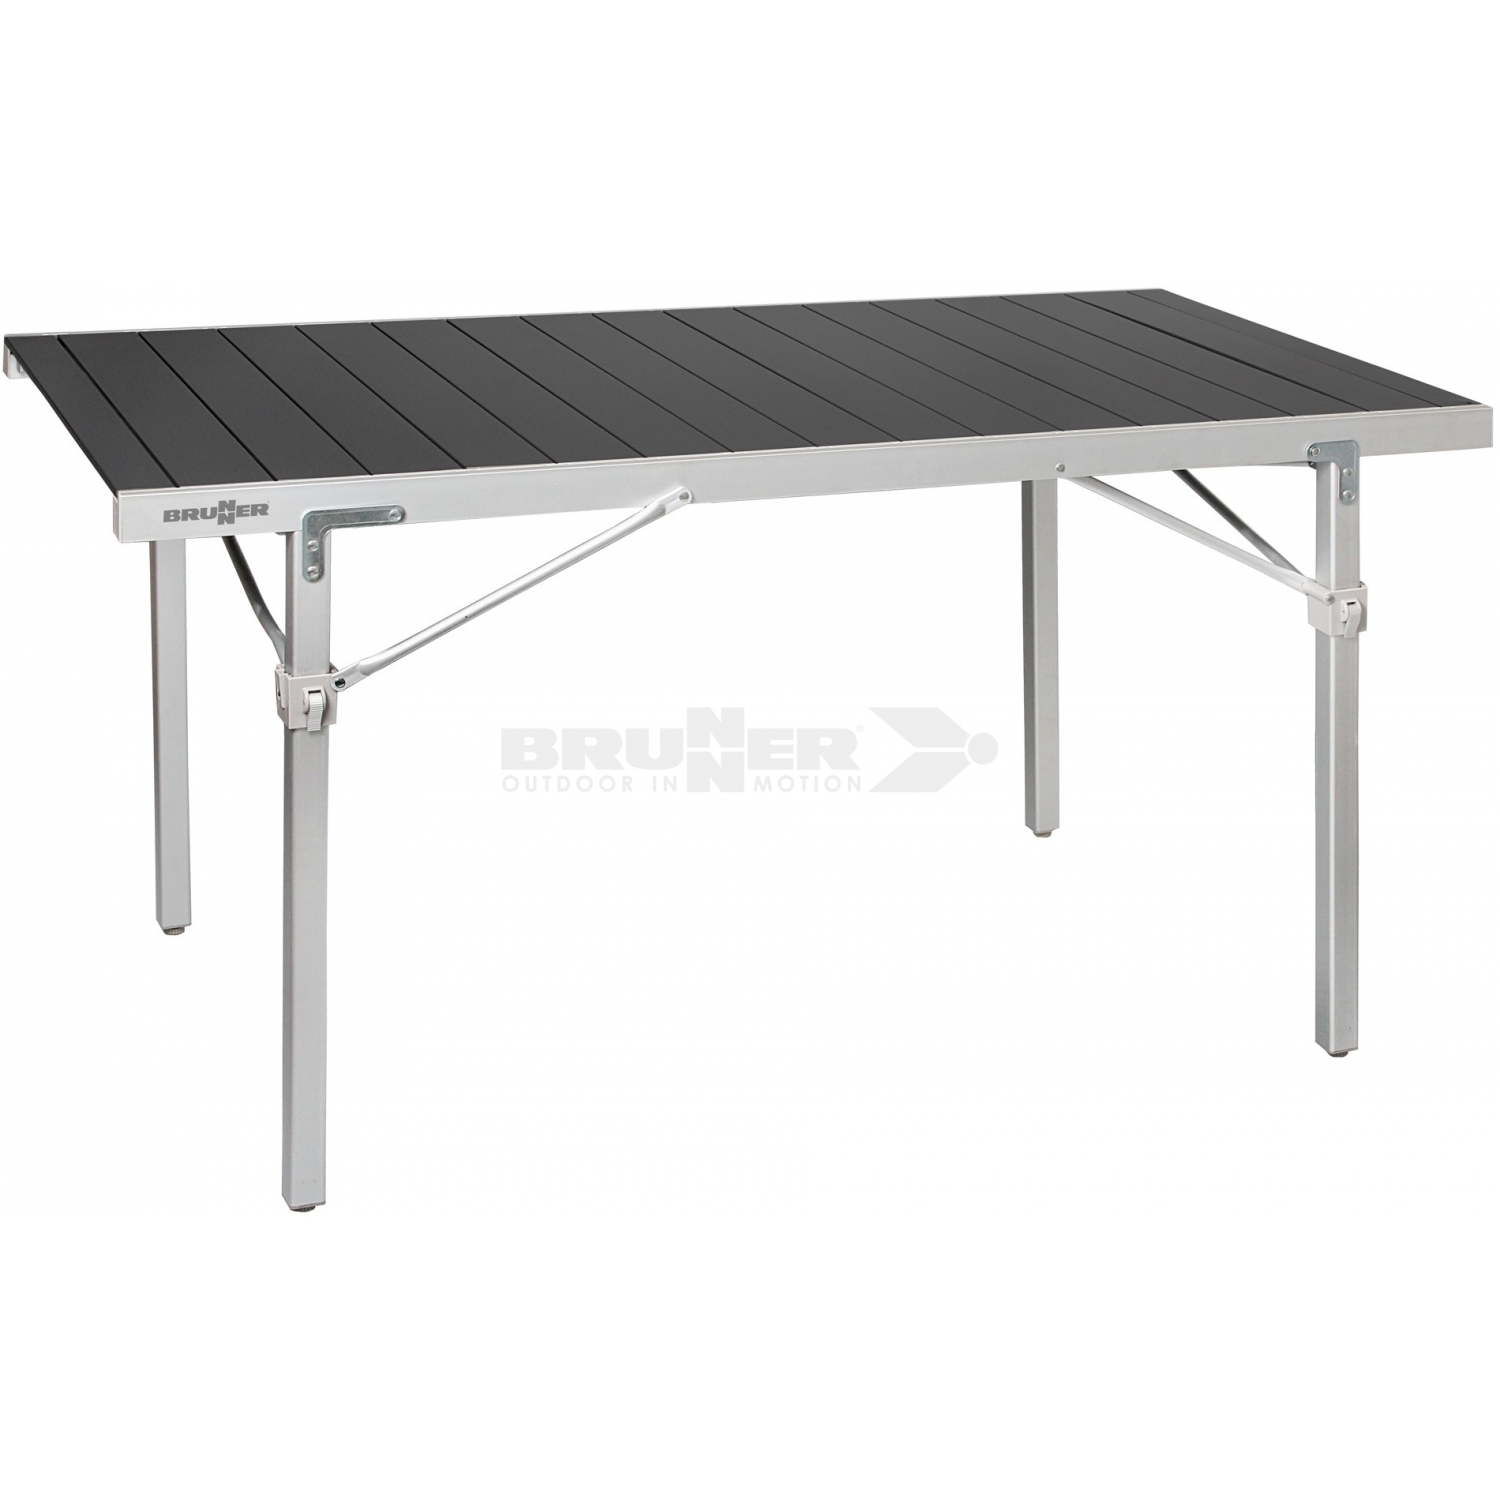 Brunner titanium quadra 6 ng tavoli nencini sport for Table titanium quadra 6 personnes